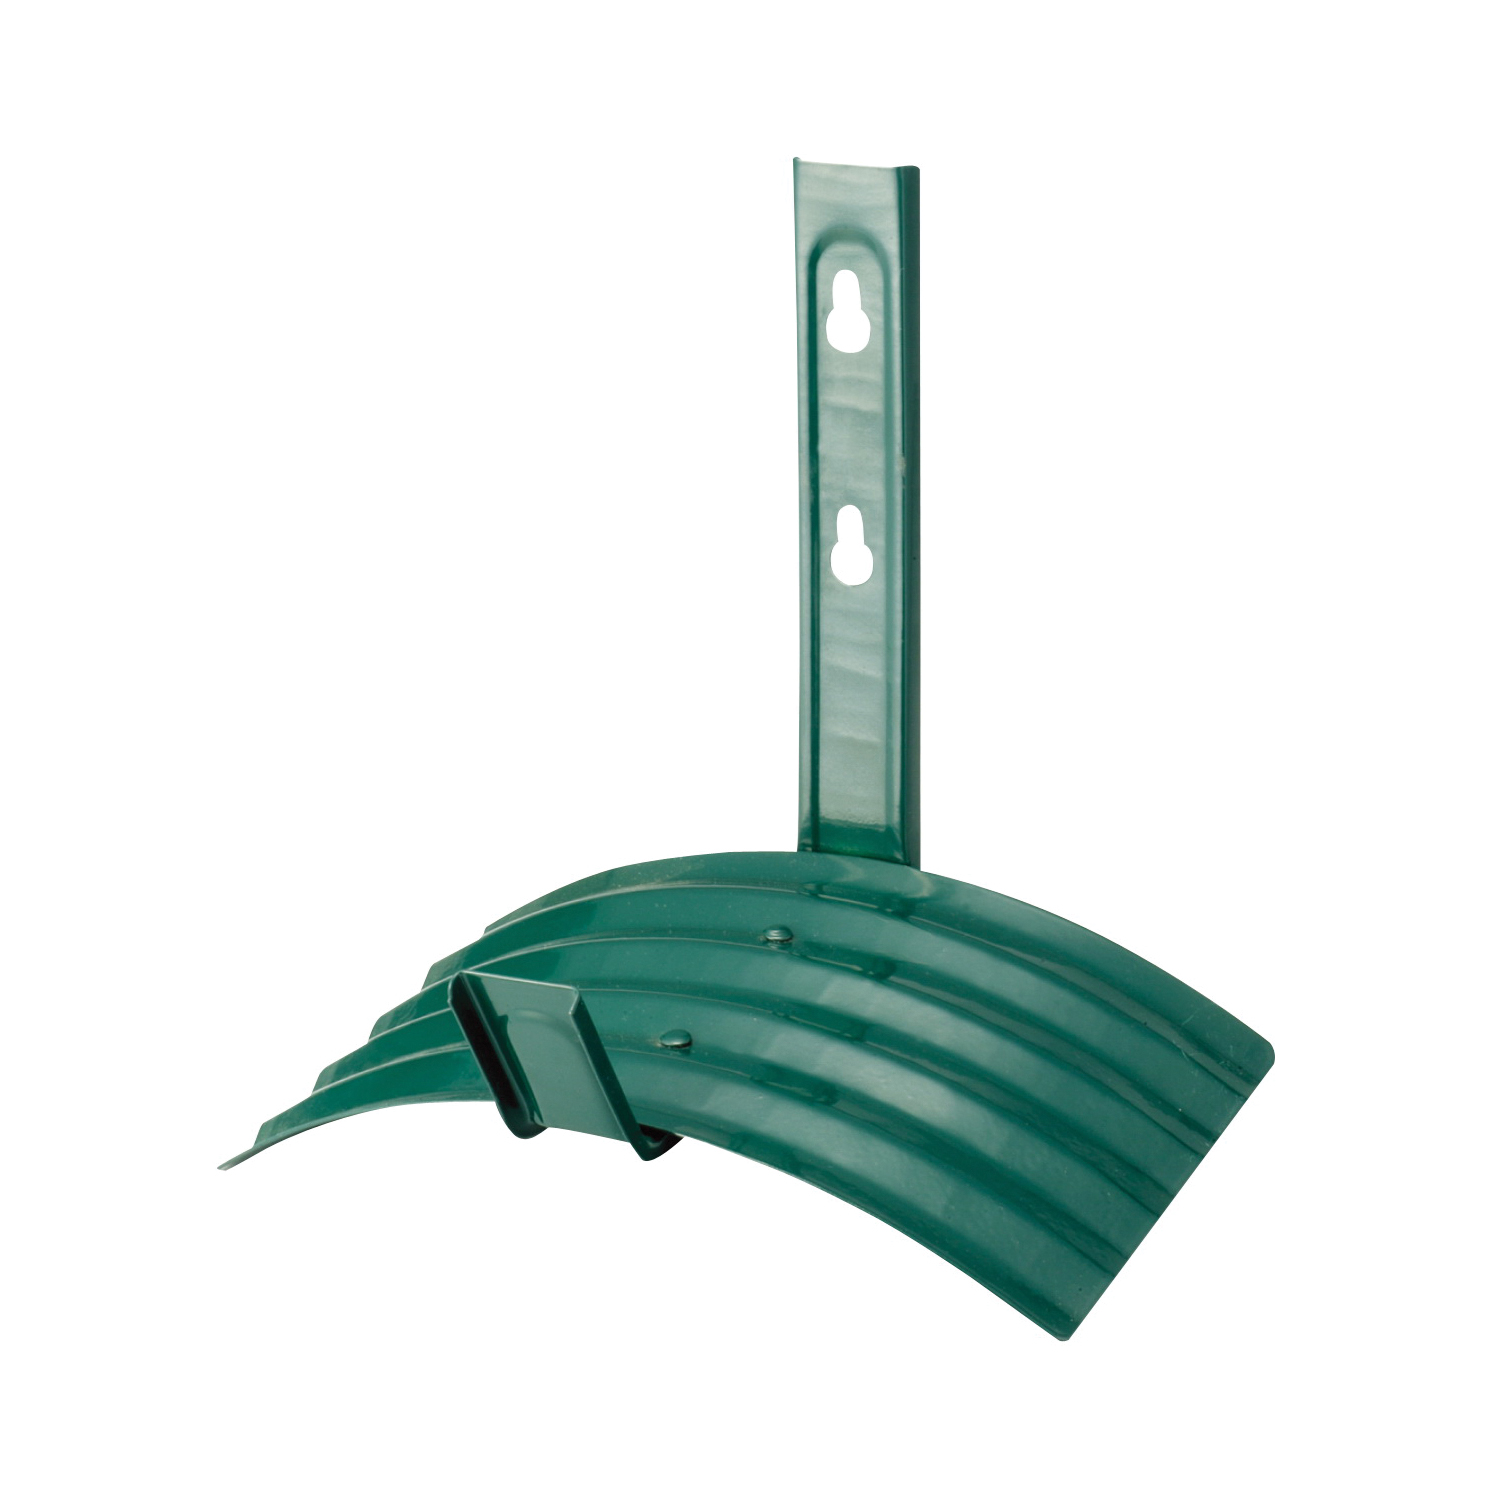 Picture of Landscapers Select GB-5227-3L Hose Hanger, 60 ft Capacity, Metal, Matte Green, Powder-Coated, Wall Mounting